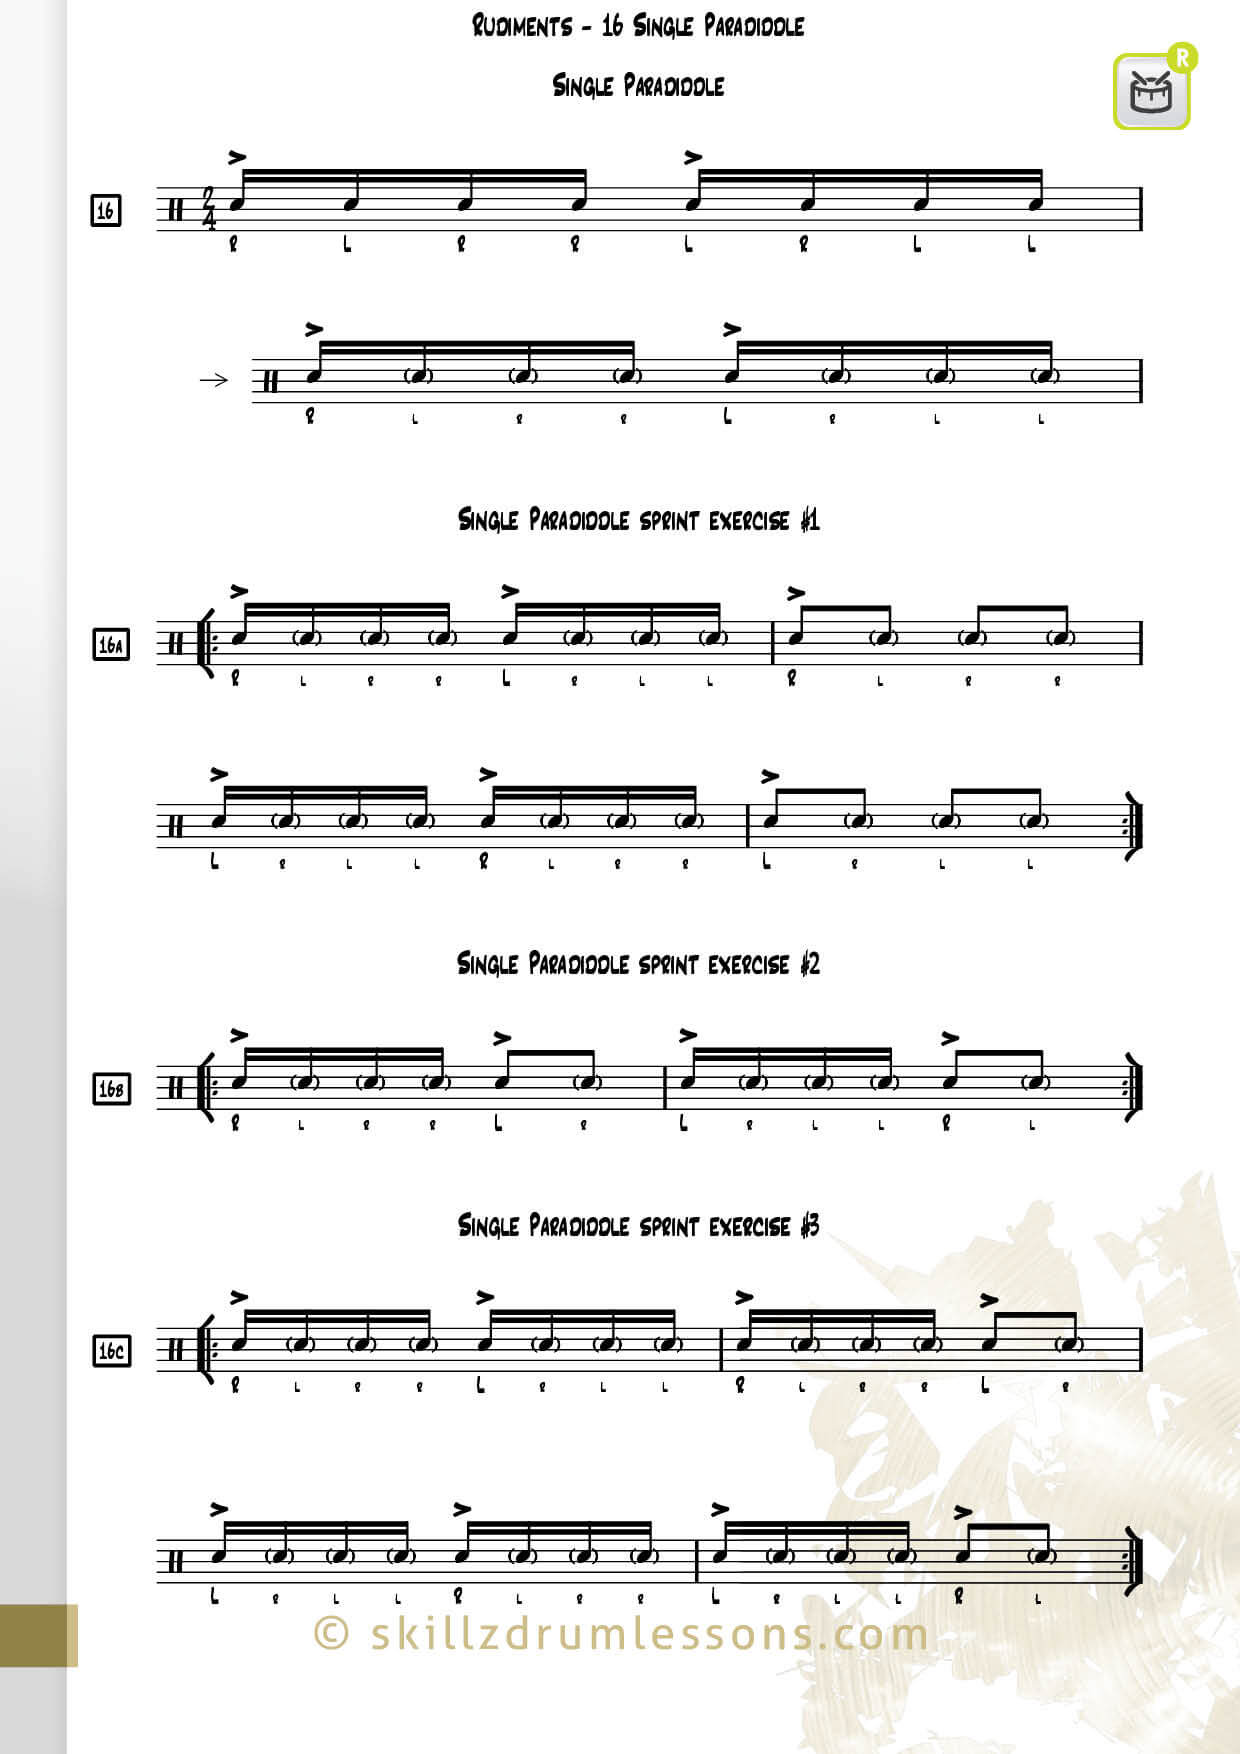 This is an image of the Official 40 Essential P.A.S. Rudiments #16 The Single Paradiddle by Skillz Drum Lessons